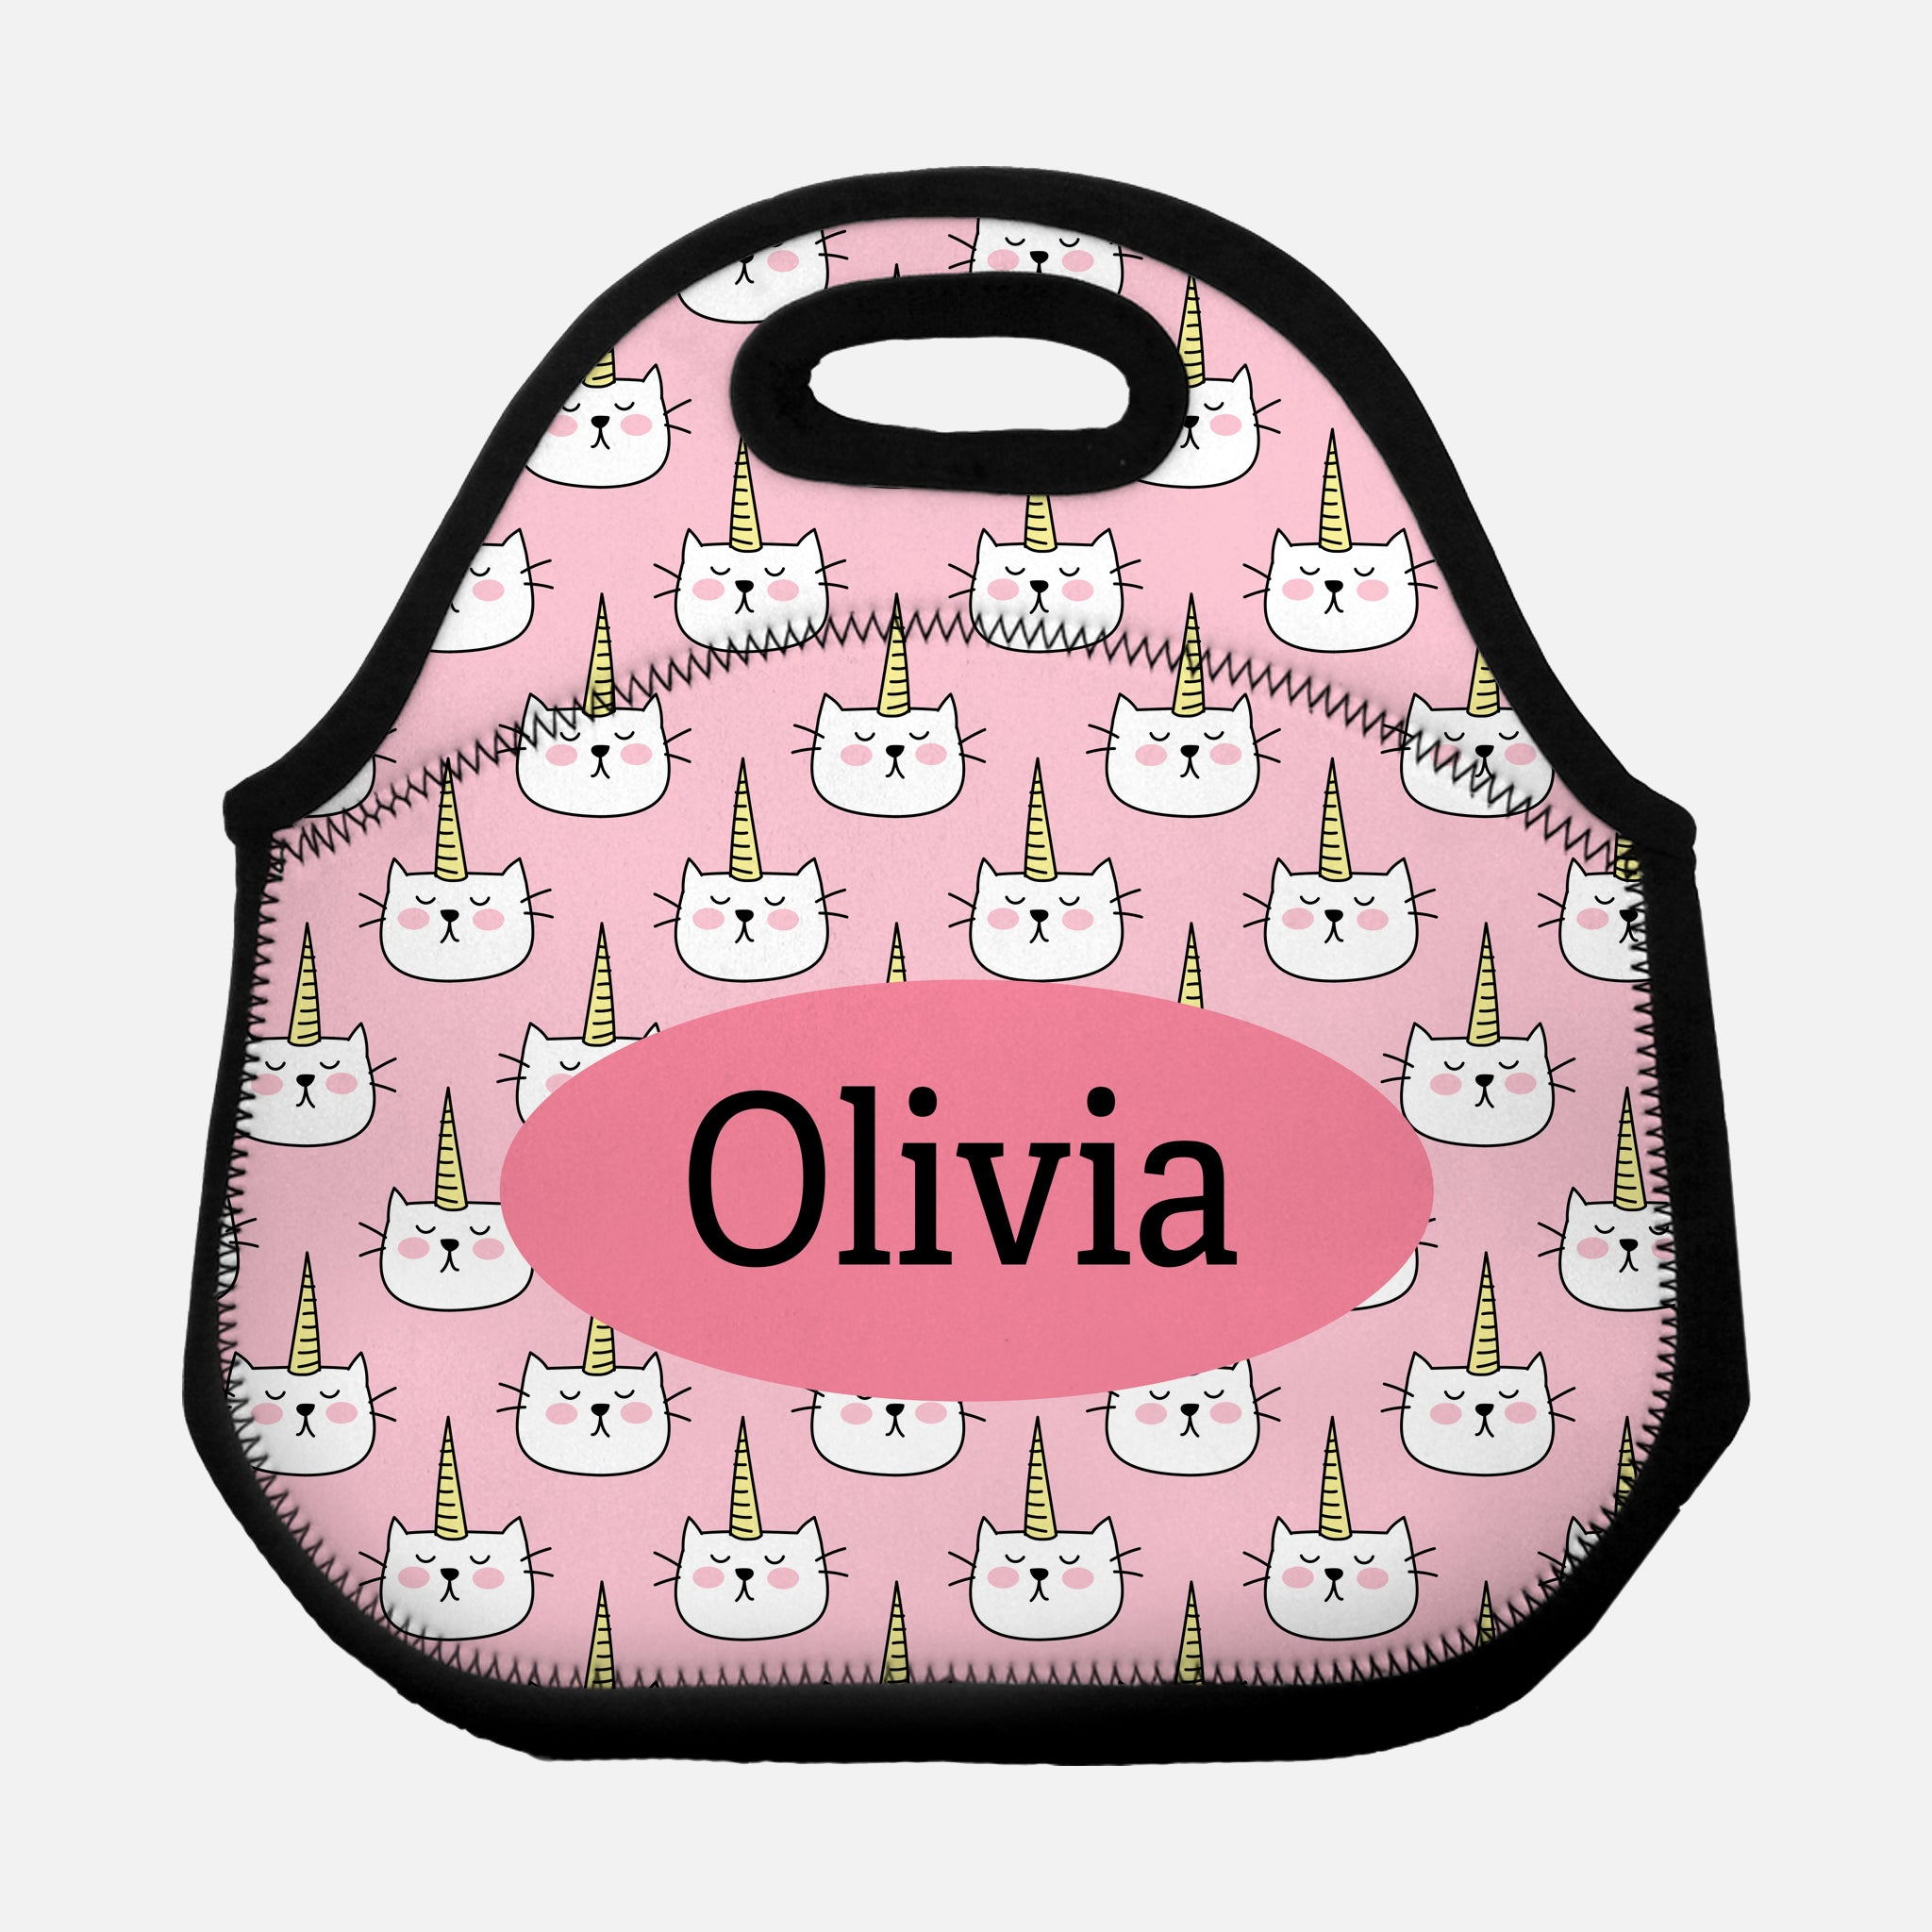 Caticorn Cat Unicorn Pattern PATTCATICORN1 Pink Personalized Name Lunch Tote Bag Neoprene Insulated - By Happy Cat Prints